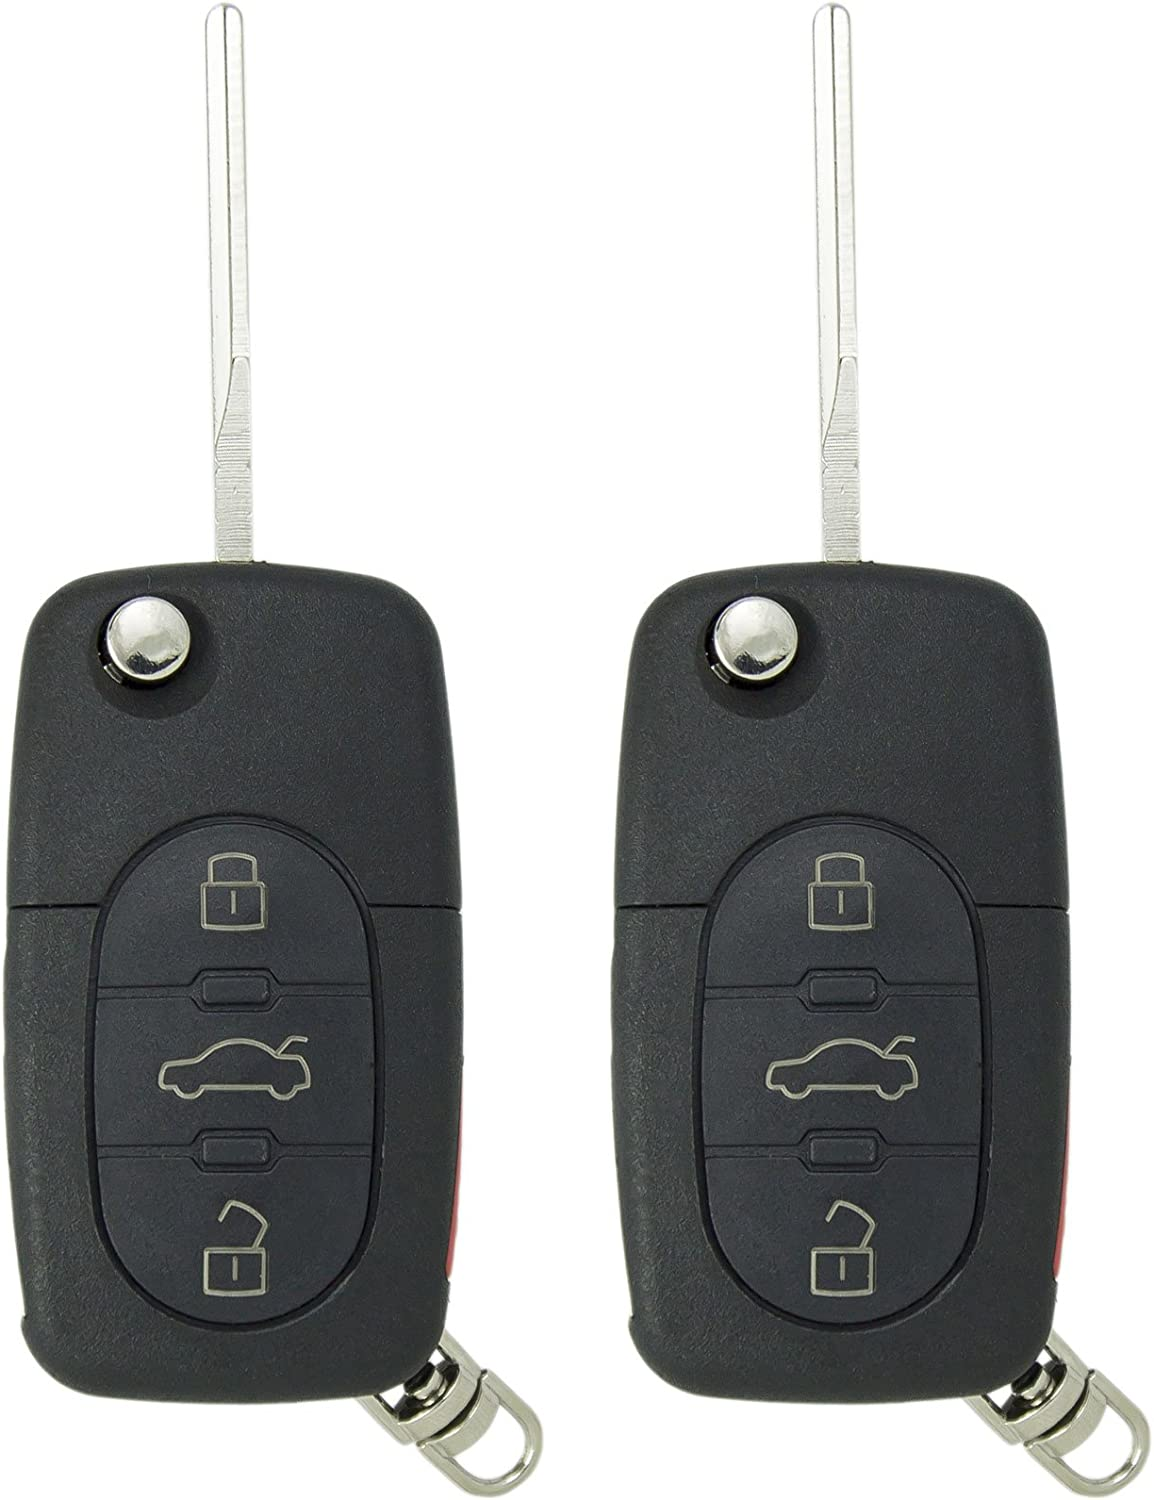 2 Pack Keyless2Go New Keyless Entry Remote Car Key Fob for Vehicles That Use 1J0959753F